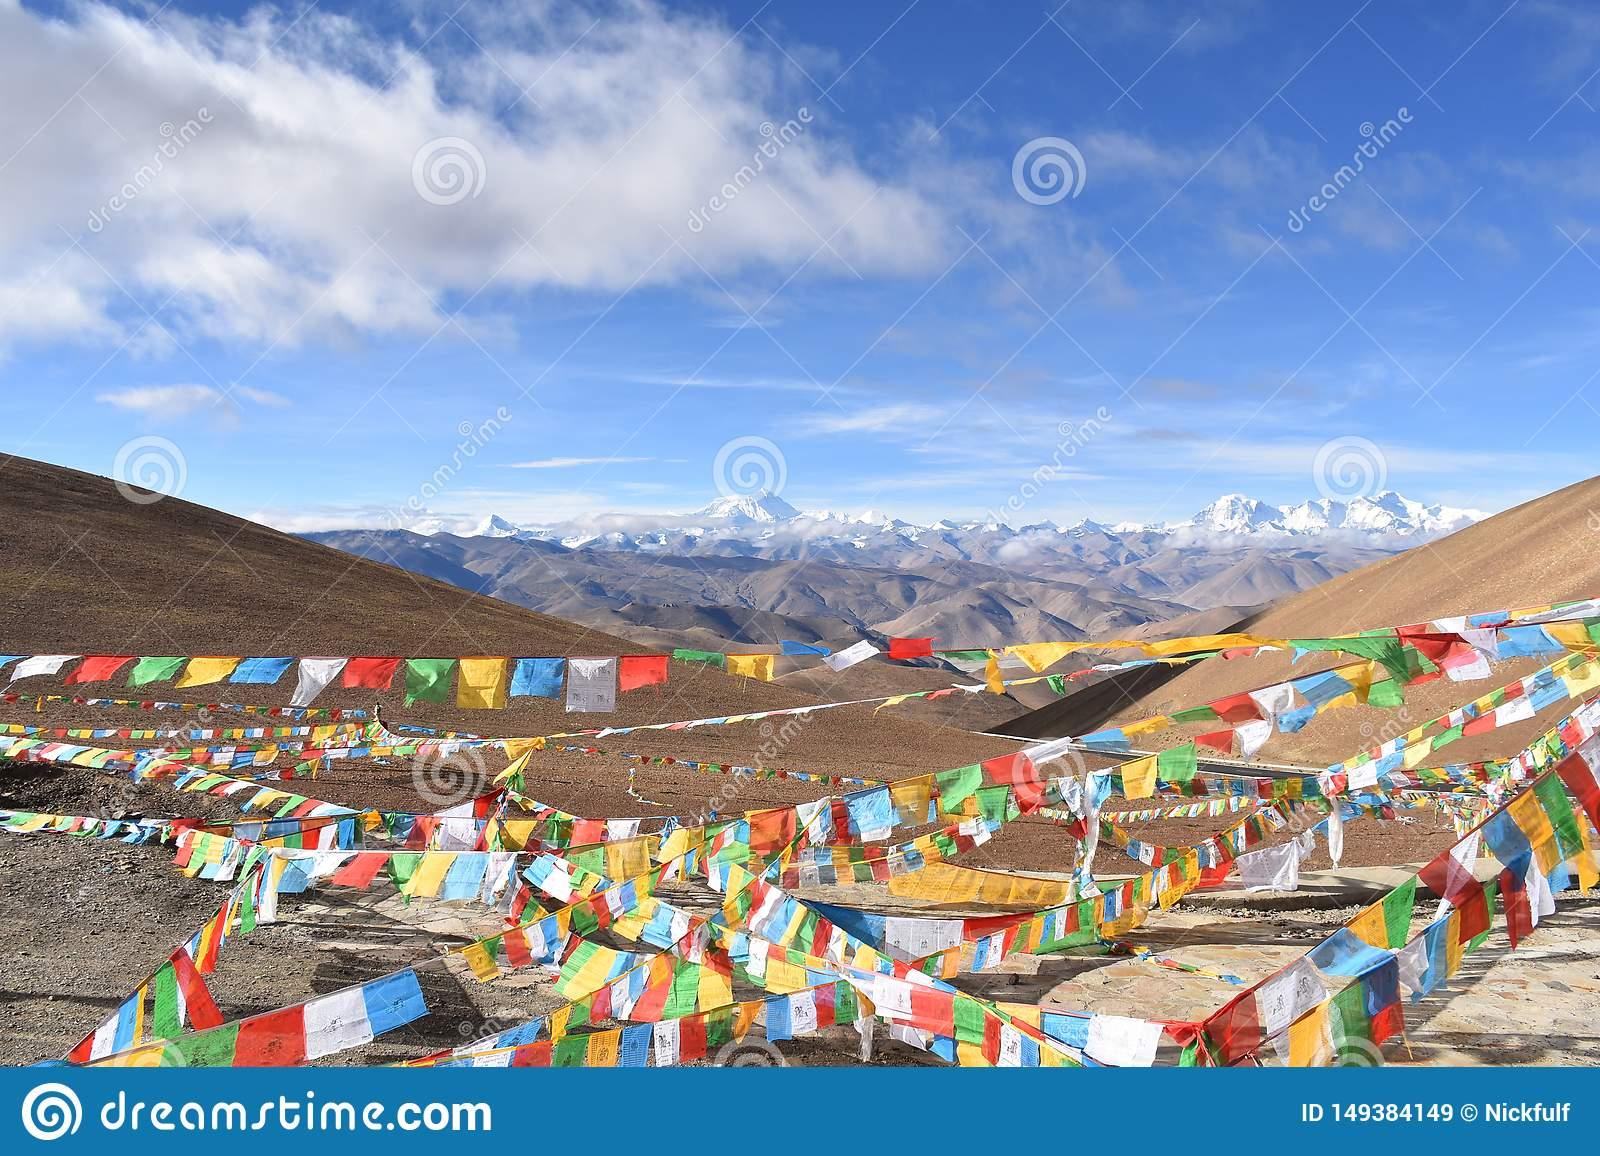 Mount Everest with prayer flags in foreground